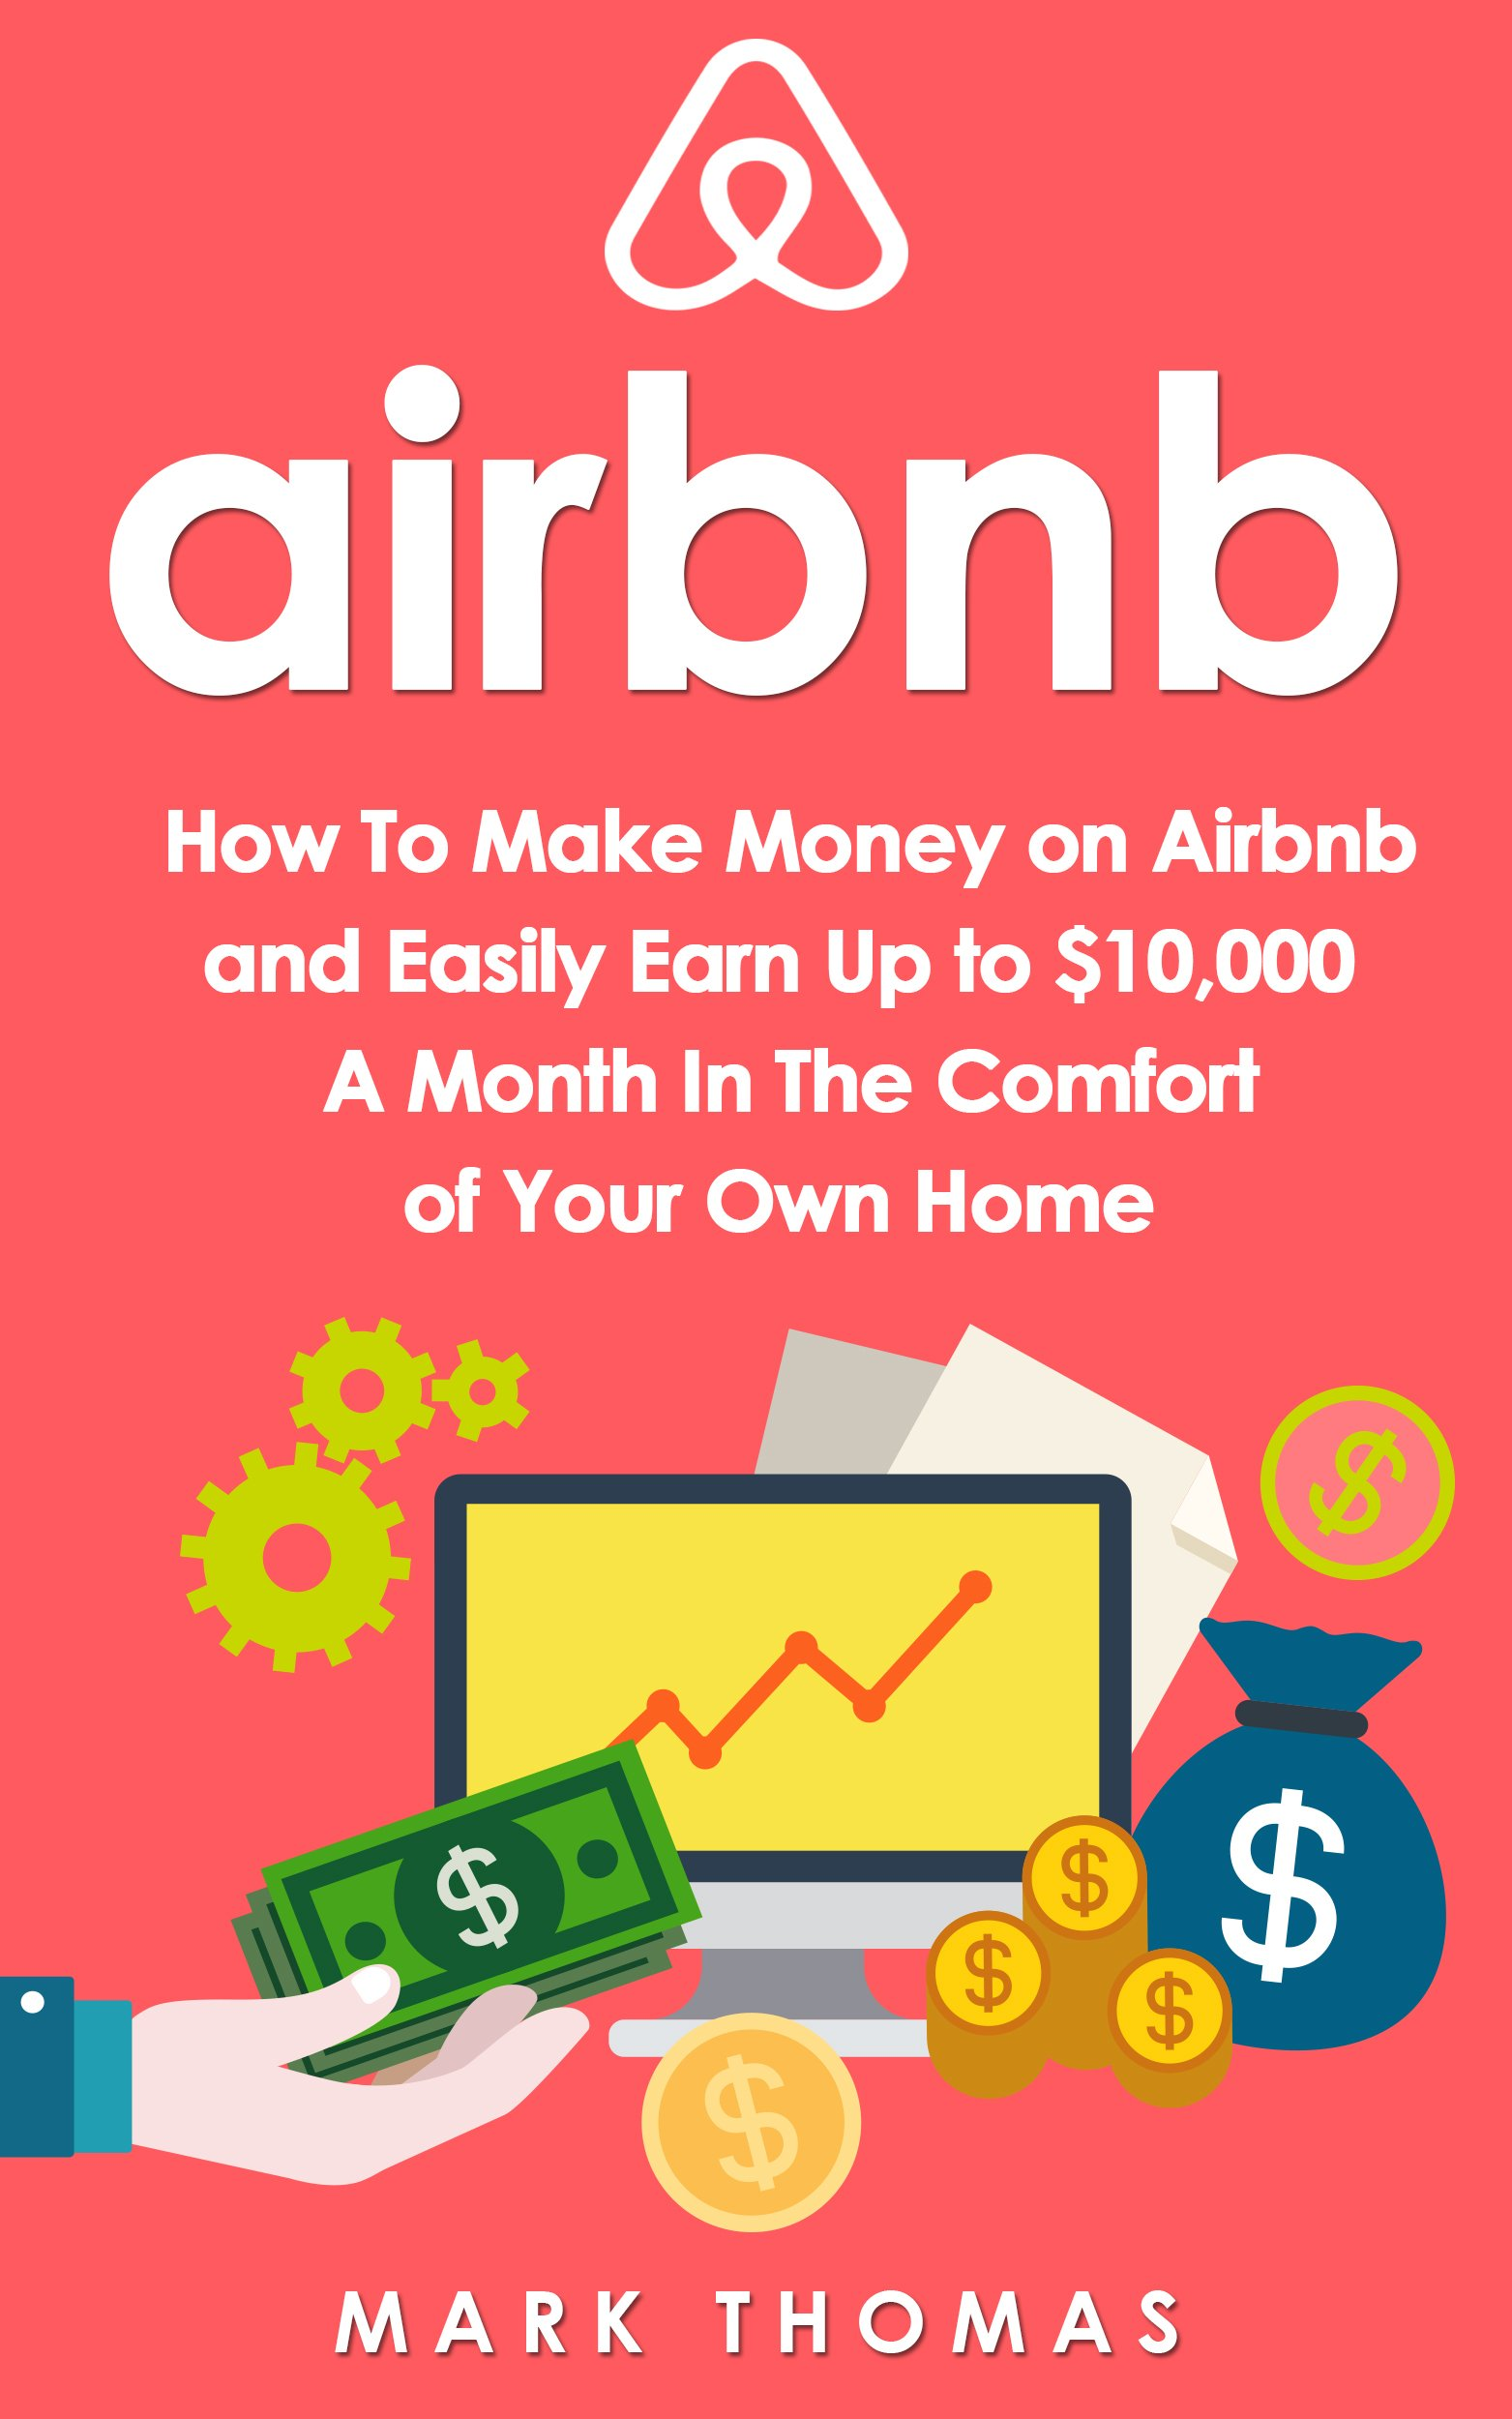 Airbnb How To Make Money - Mark Thomas